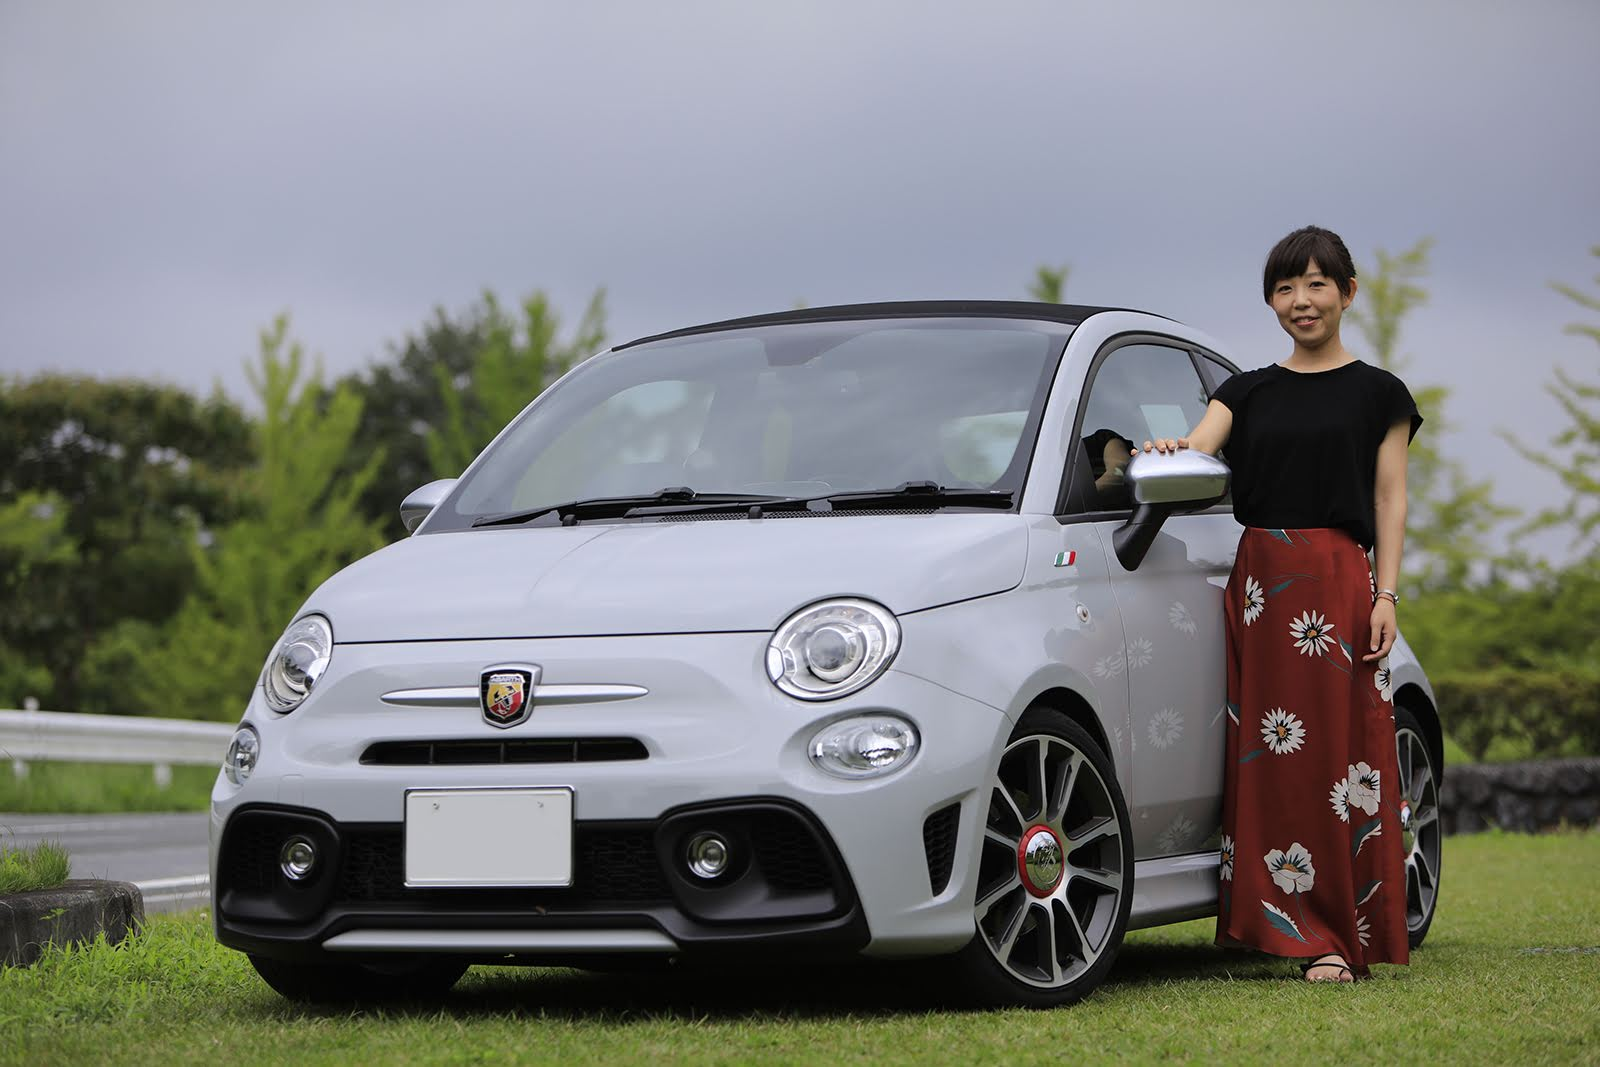 190913_Abarth_Owner_07